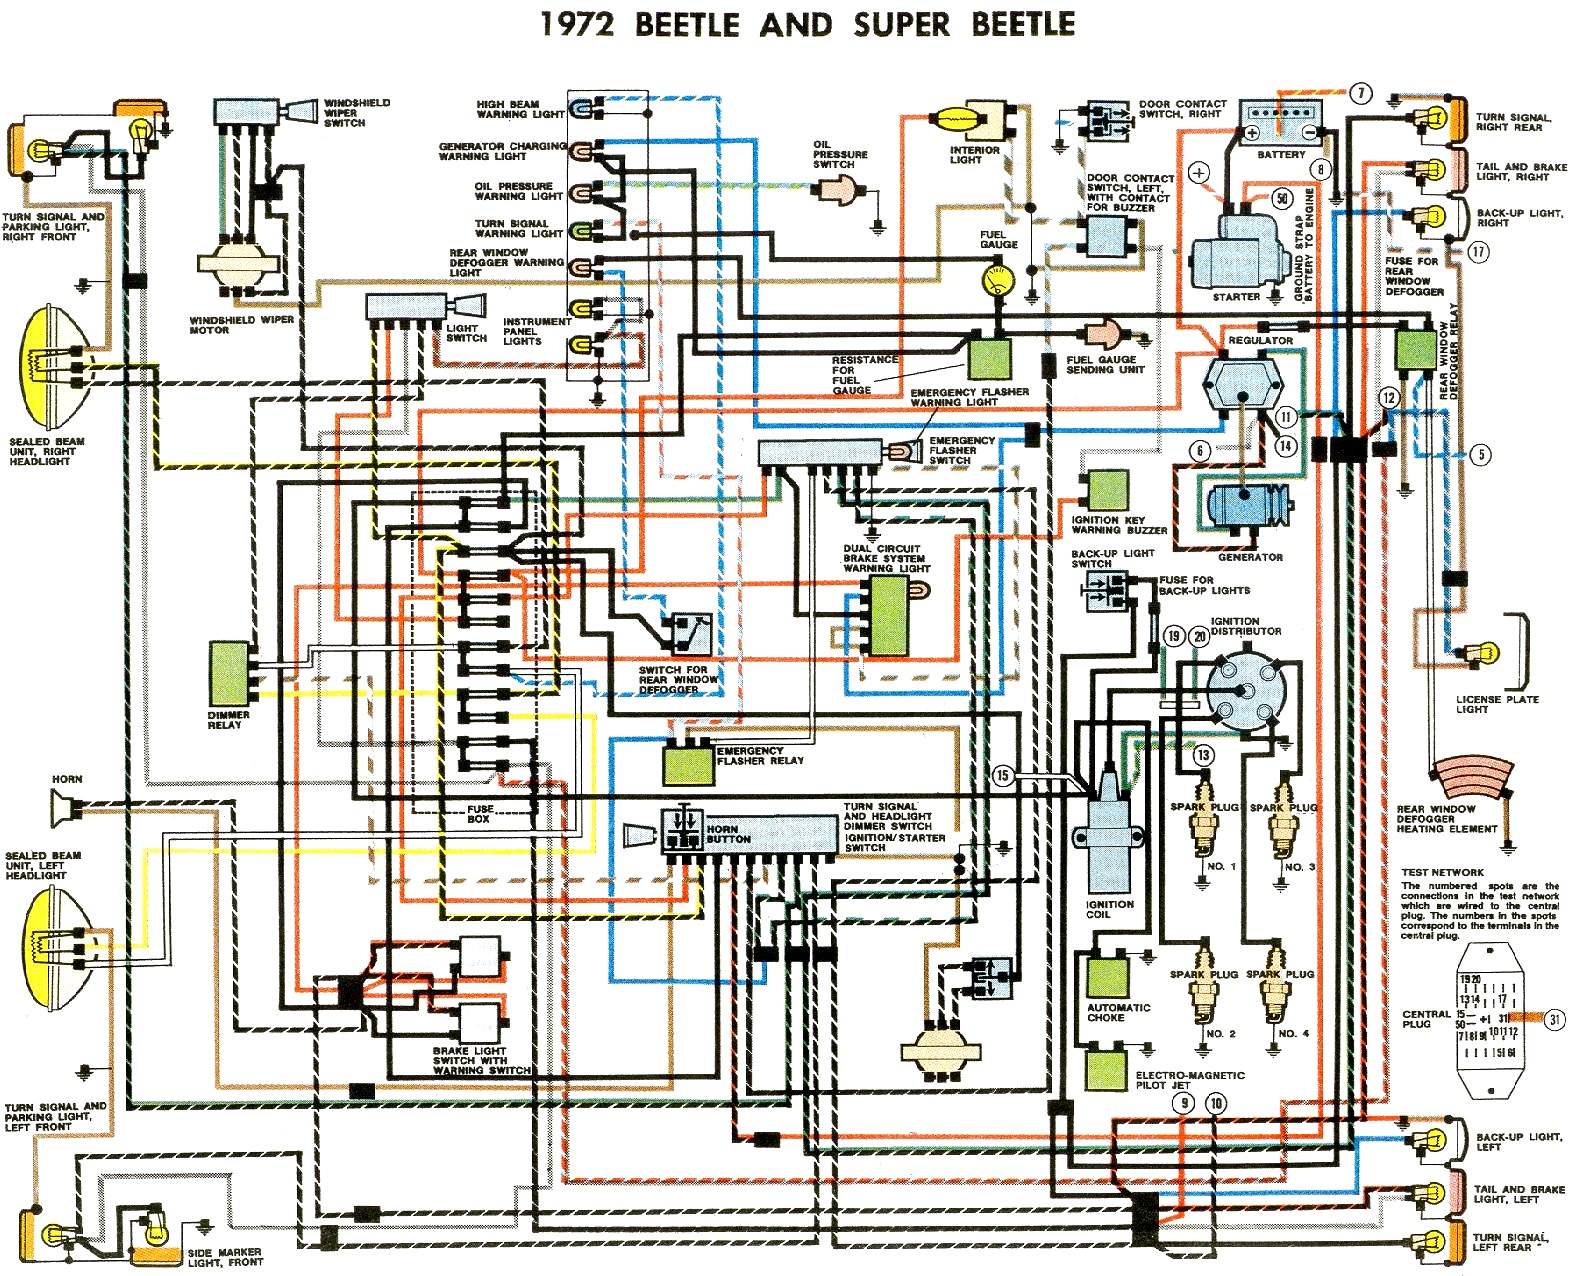 bug_72 vw mk1 wiring diagram 56 vw bug wiring diagram \u2022 wiring diagrams vw buggy wiring diagram at panicattacktreatment.co